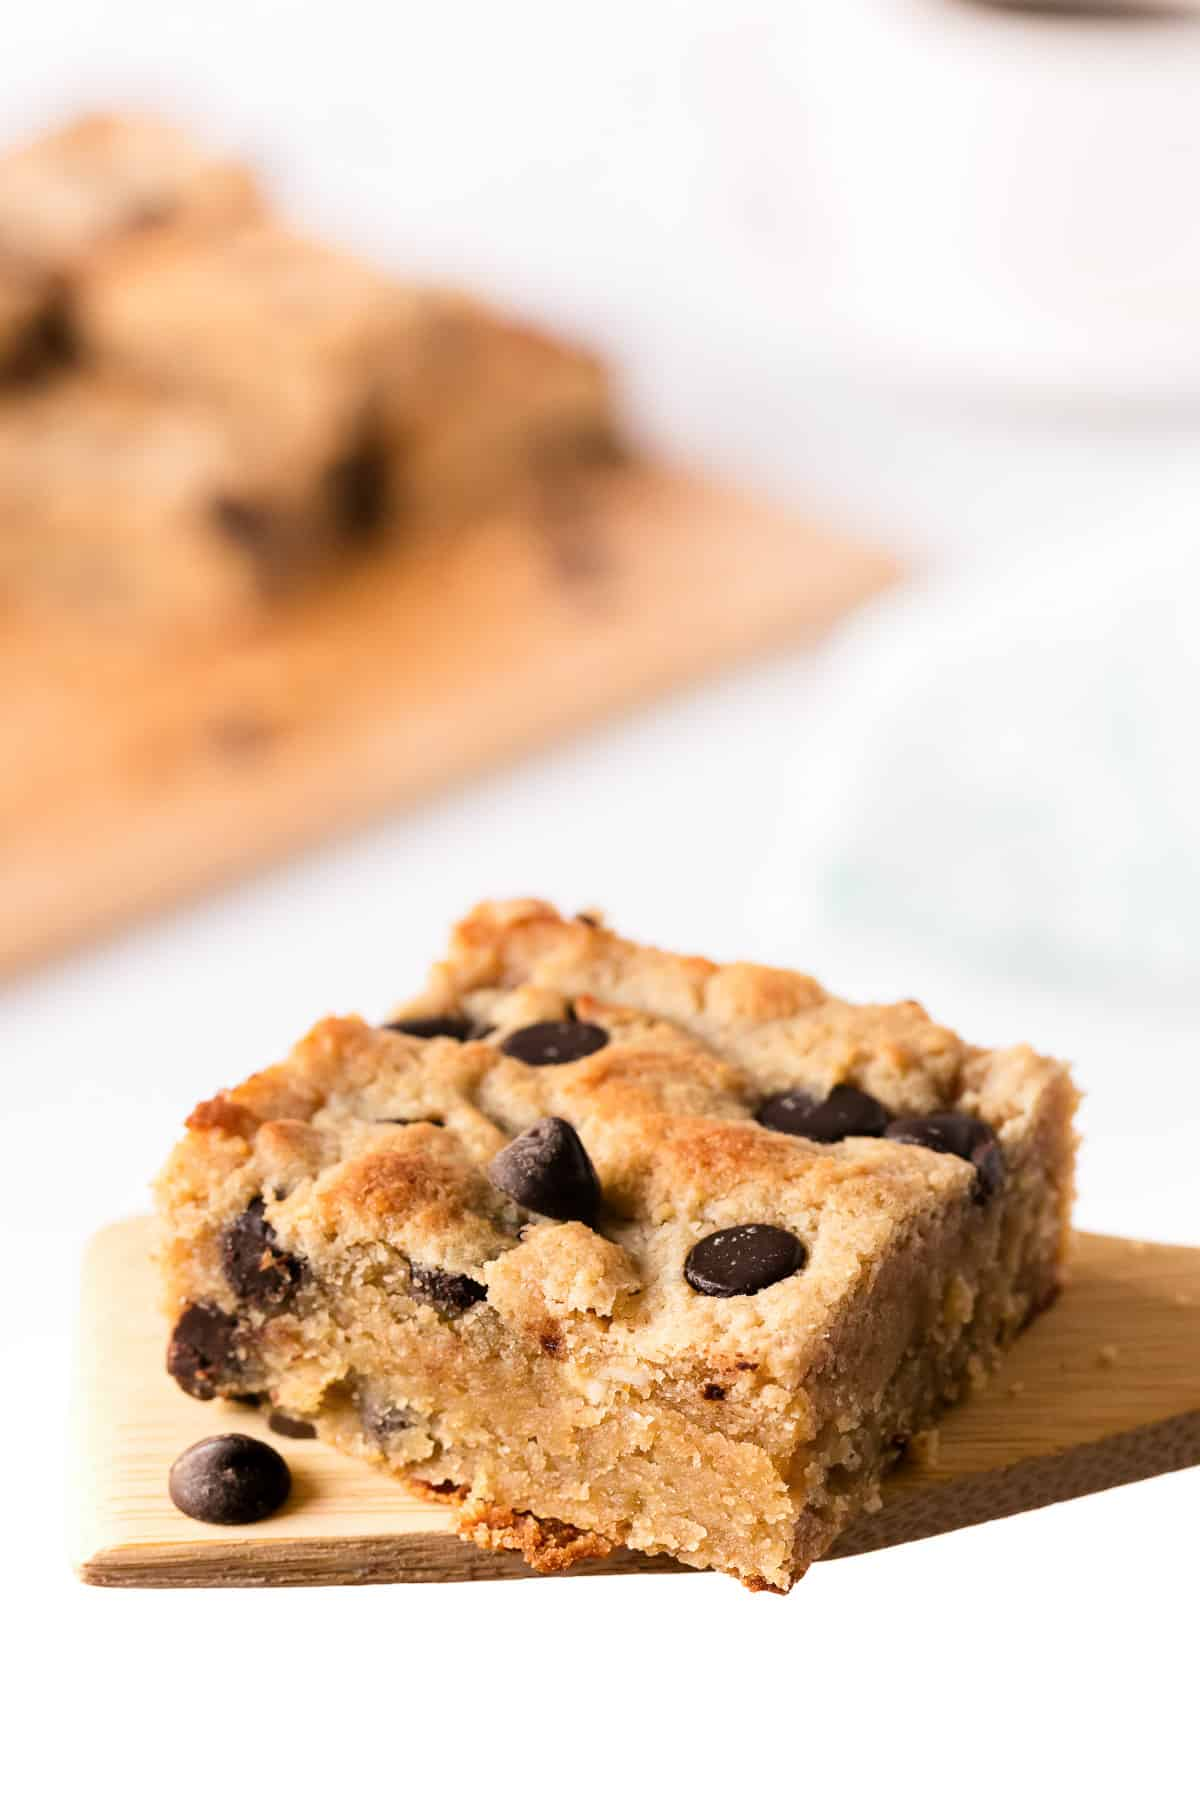 chocolate peanut butter bars stacked on top of each other on parchment paper, with a cup of coffee in the background